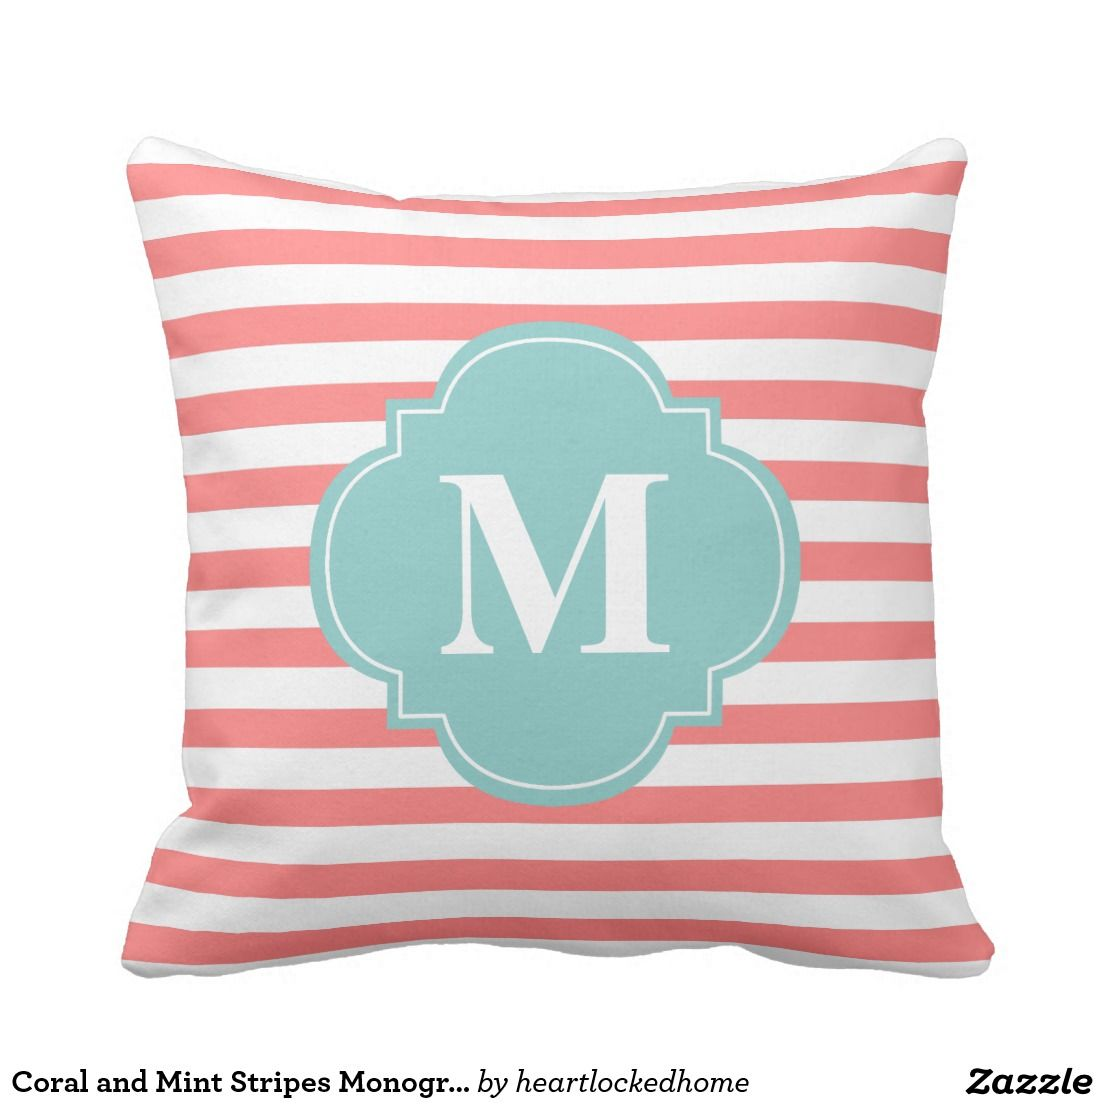 colorblock pillows stripe striped mint il pillow listing fullxfull zoom set navy blue